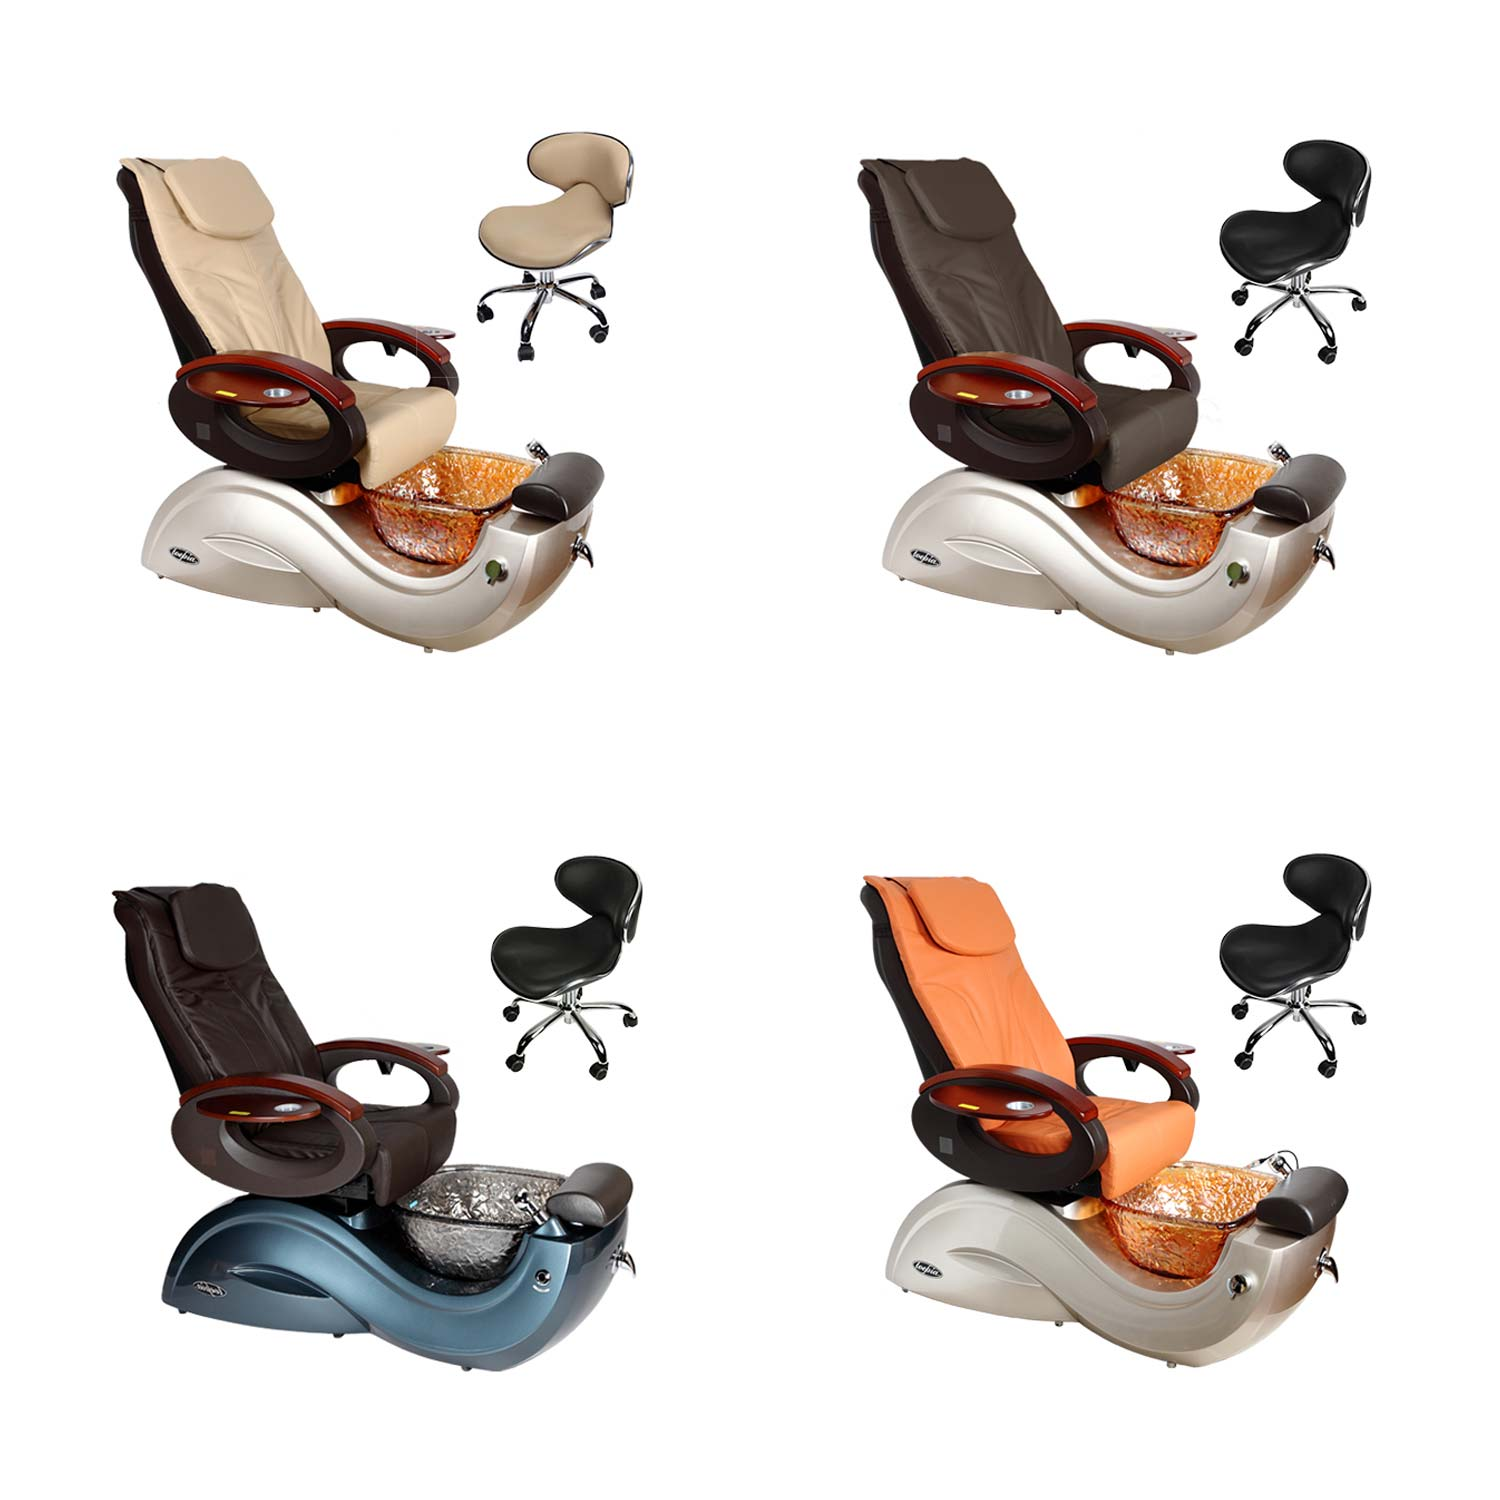 Toepia GX Pipeless Pedicure Spa Chair w/Vented Option alternative product image 1